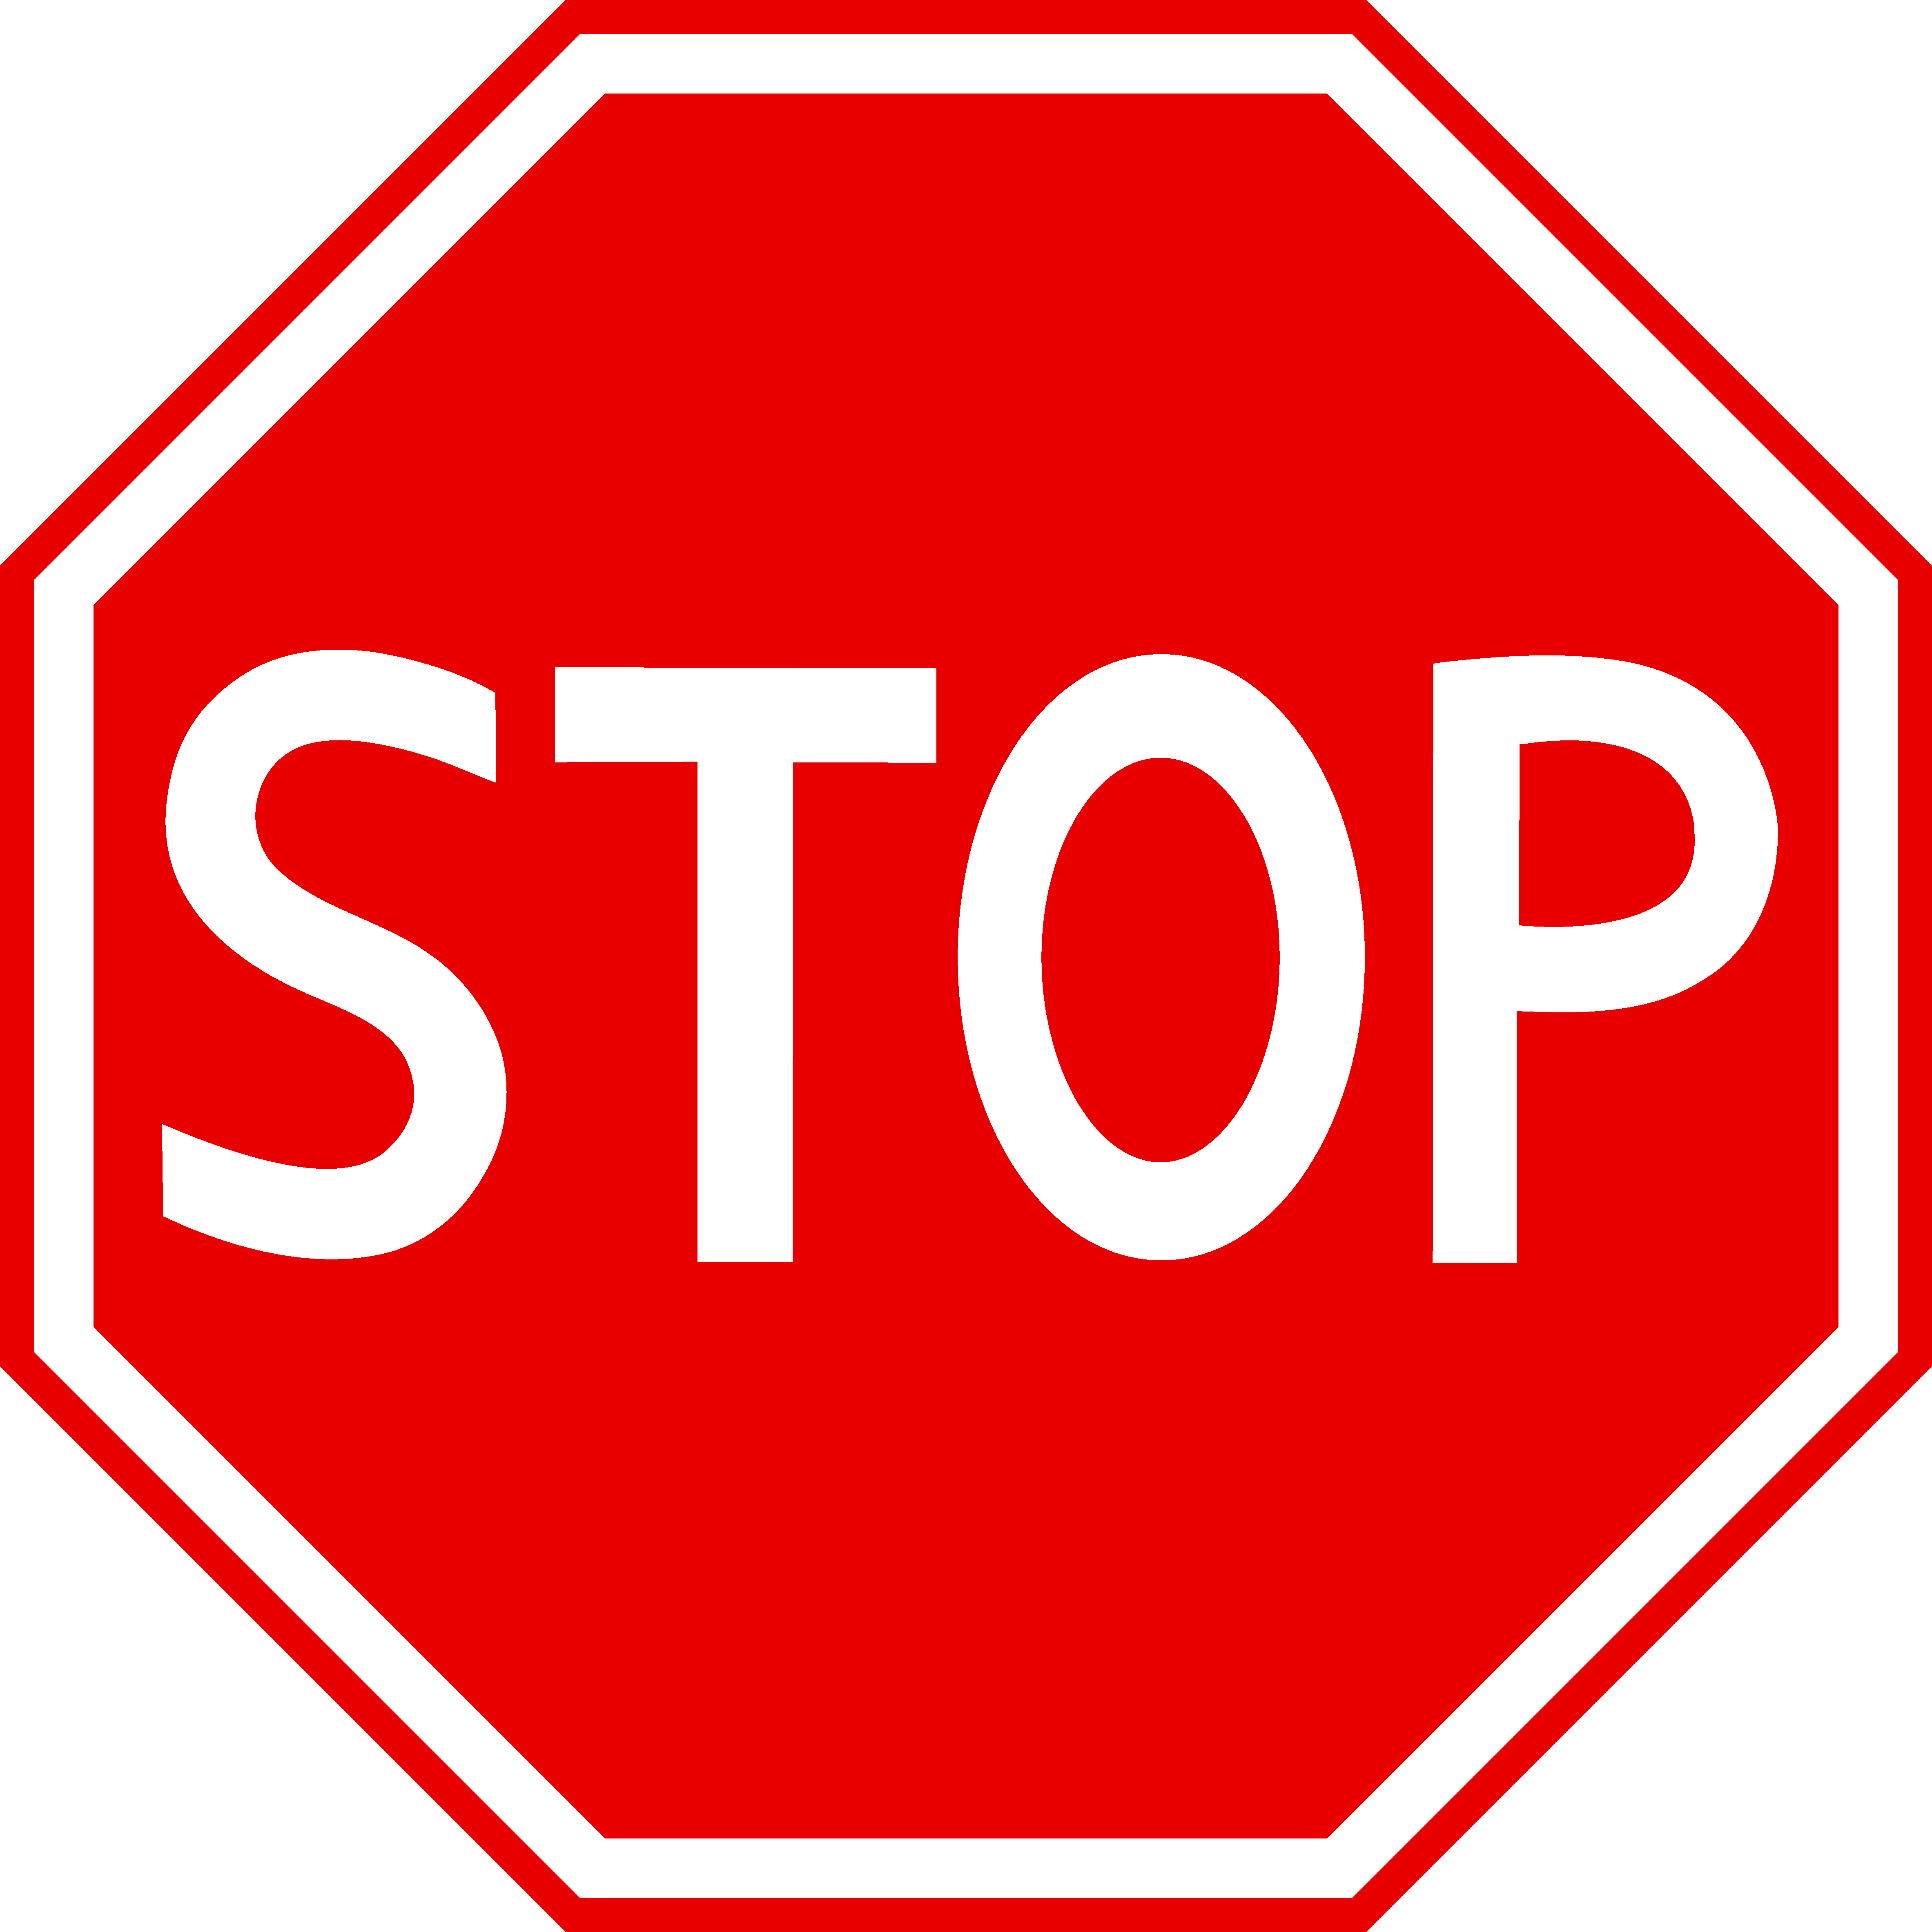 Stop Sign Clipart Png.